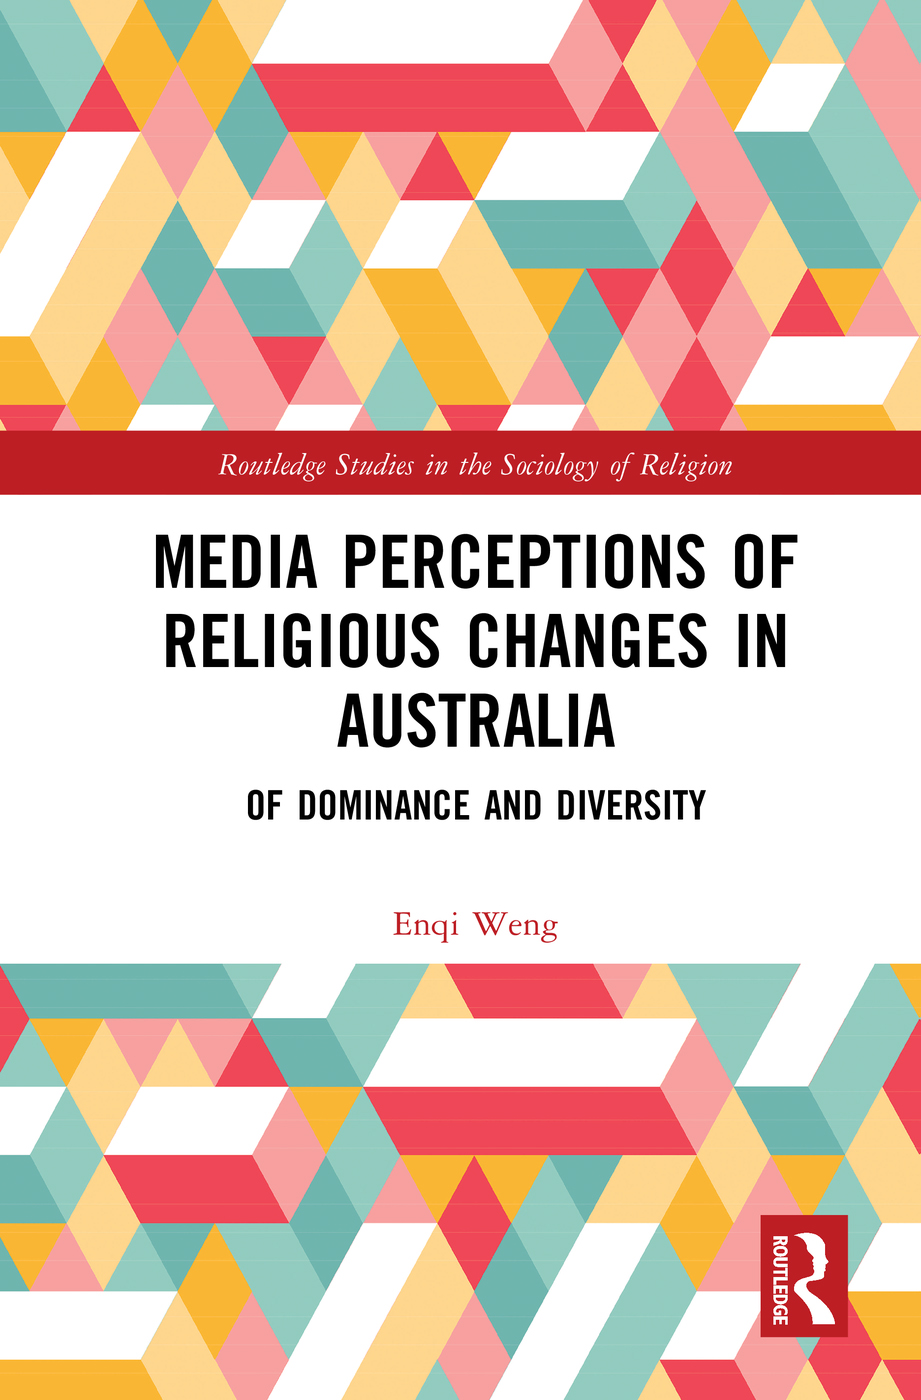 Media Perceptions of Religious Changes in Australia: Of Dominance and Diversity book cover